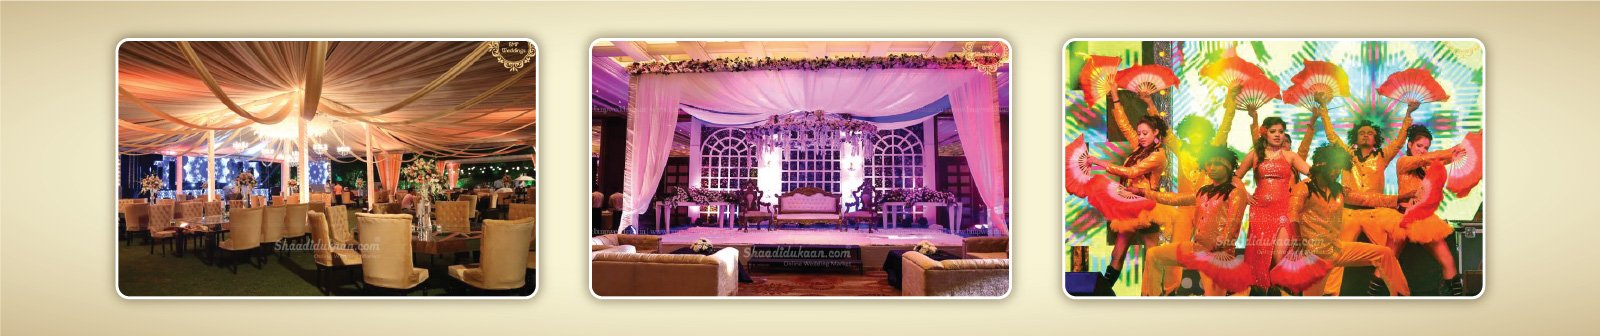 Best Wedding Planners in Kolkata